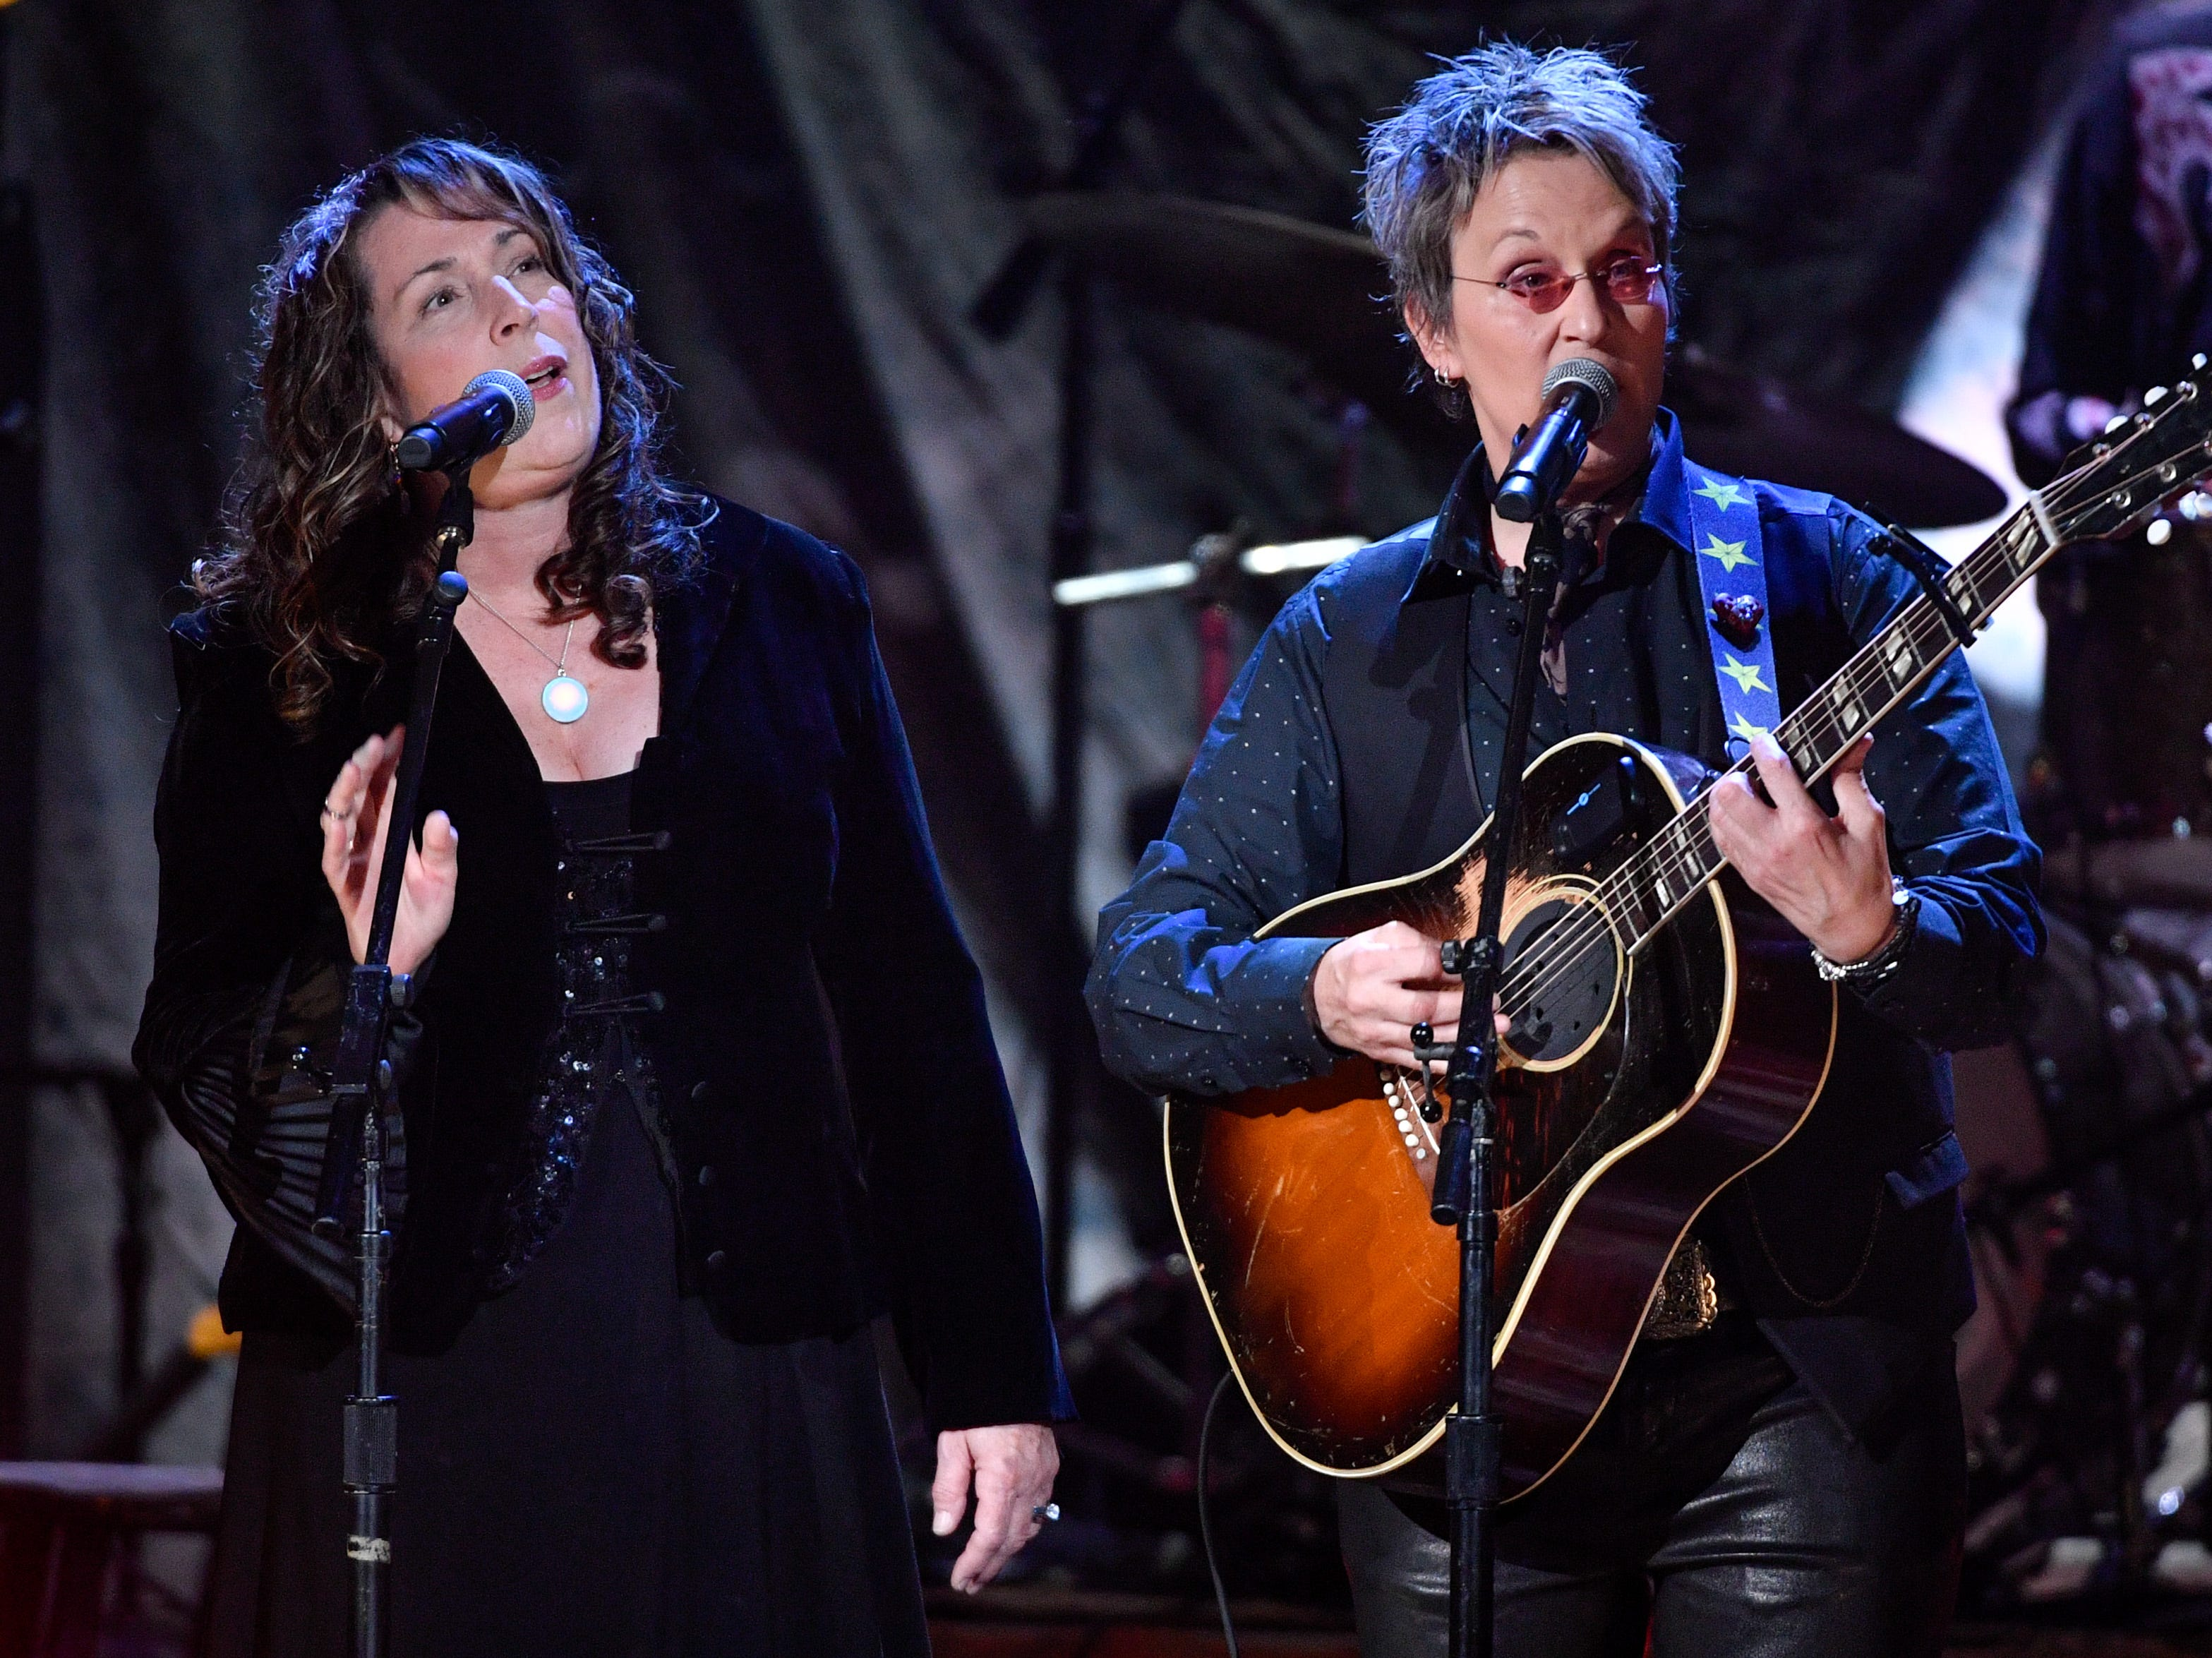 Beth Nielsen Chapman and Mary Gauthier perform during the 2018 Americana Honors and Awards show at the Ryman Auditorium in Nashville, Tenn., Wednesday, Sept. 12, 2018.